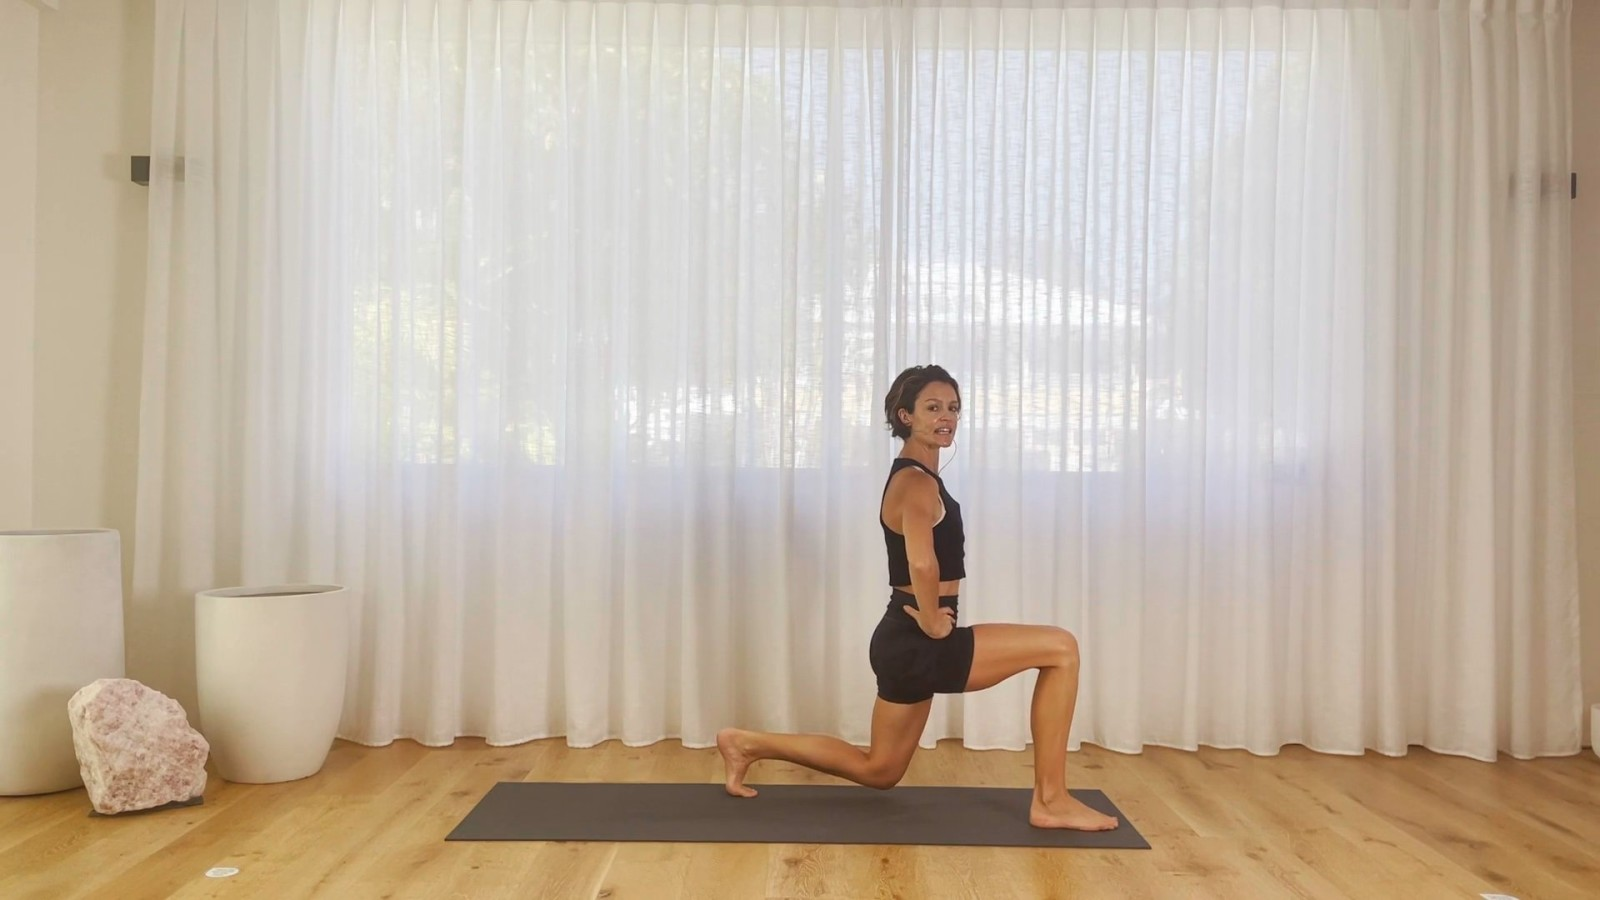 Cardio Pilates 2 Lower Body And Core with Rebecca Lockyer